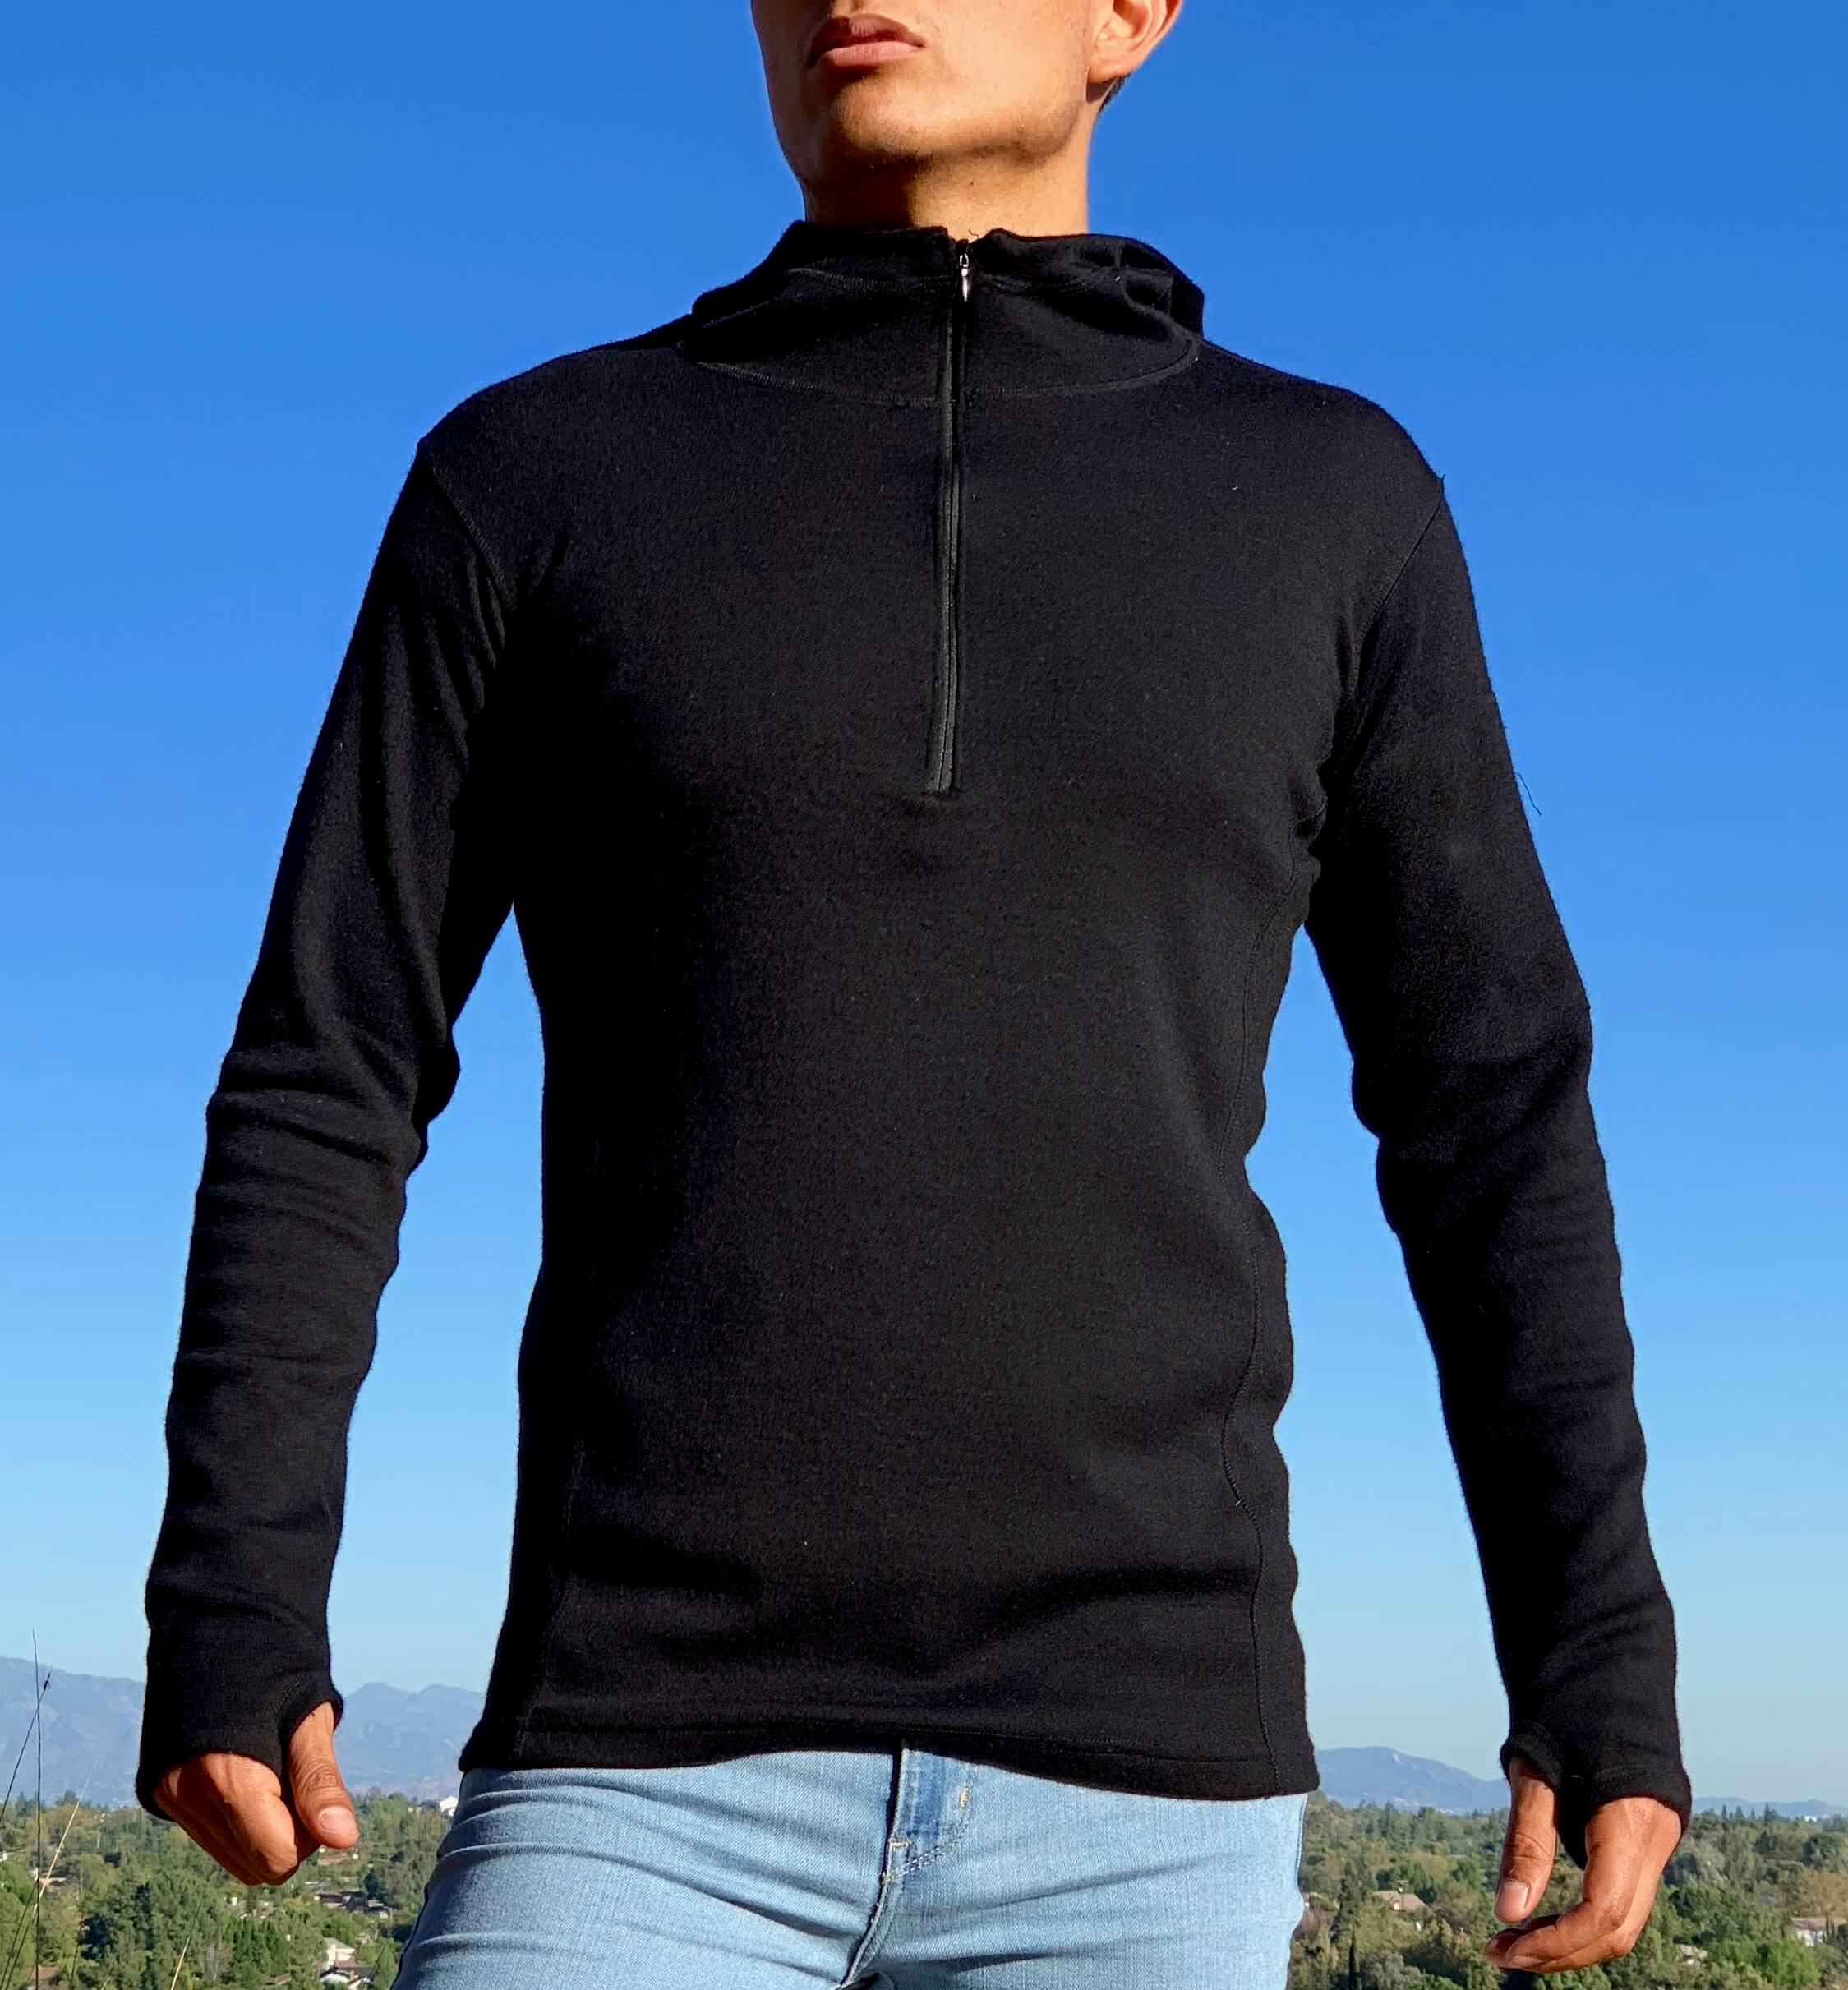 Front view of man wearing alpaca wool fleece hoodie with half zip in black